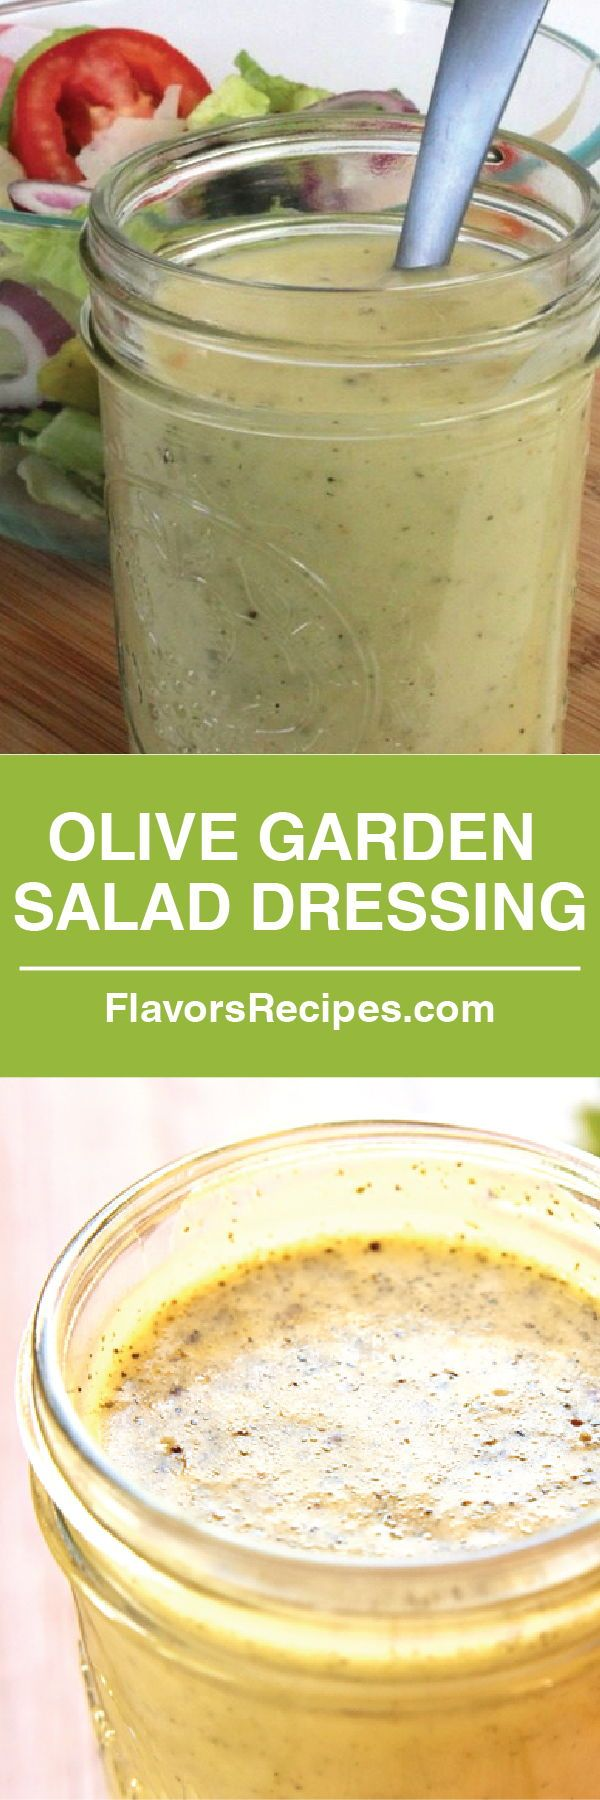 Easy & Delicious Olive Garden Salad Dressing (With images